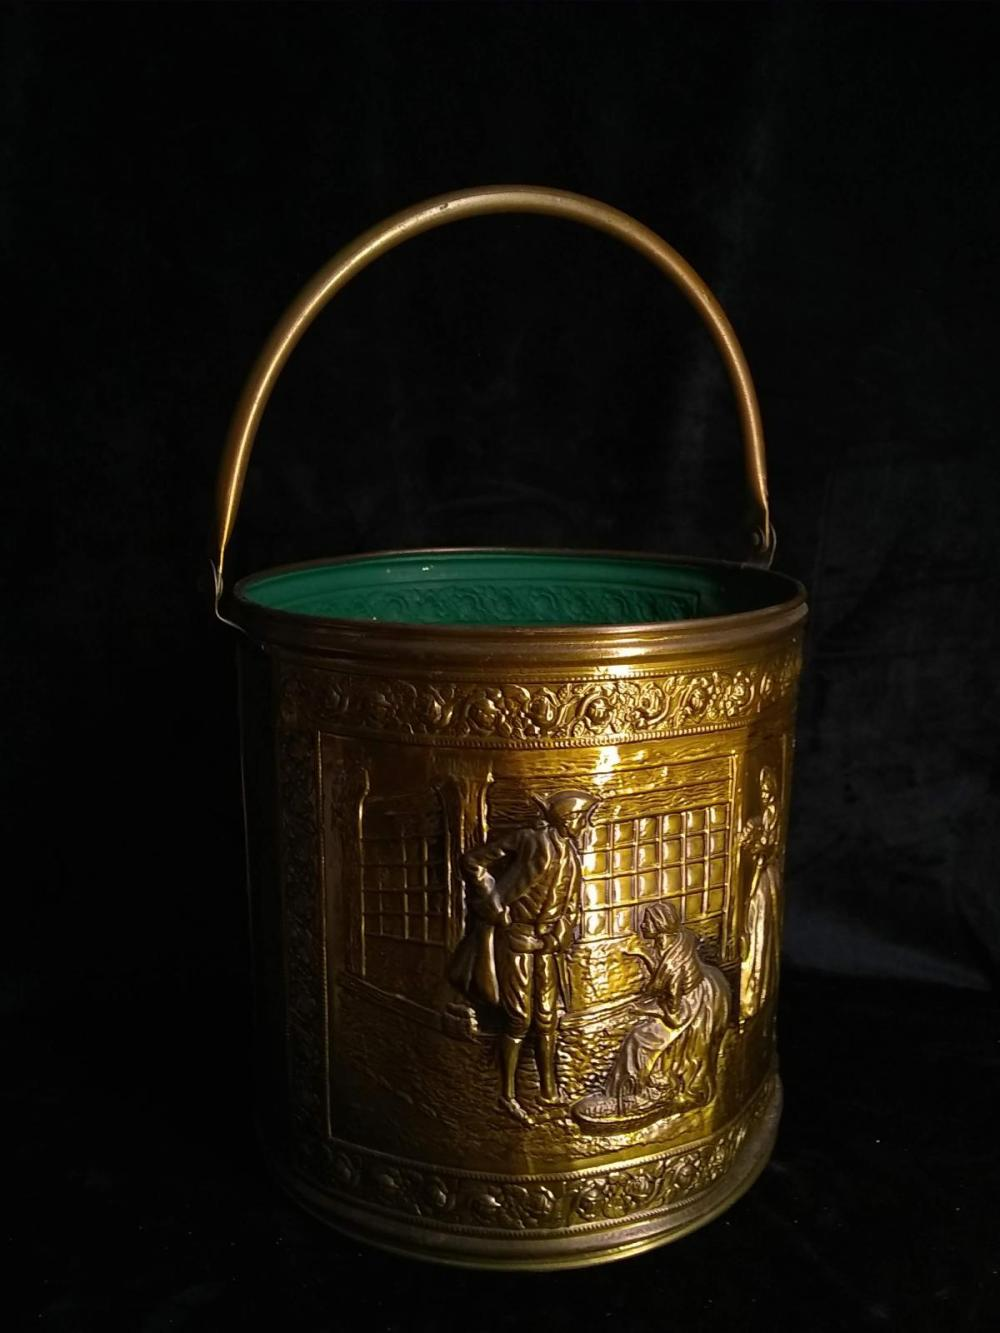 Vintage Brass Handled Bucket w/ Raised Relief